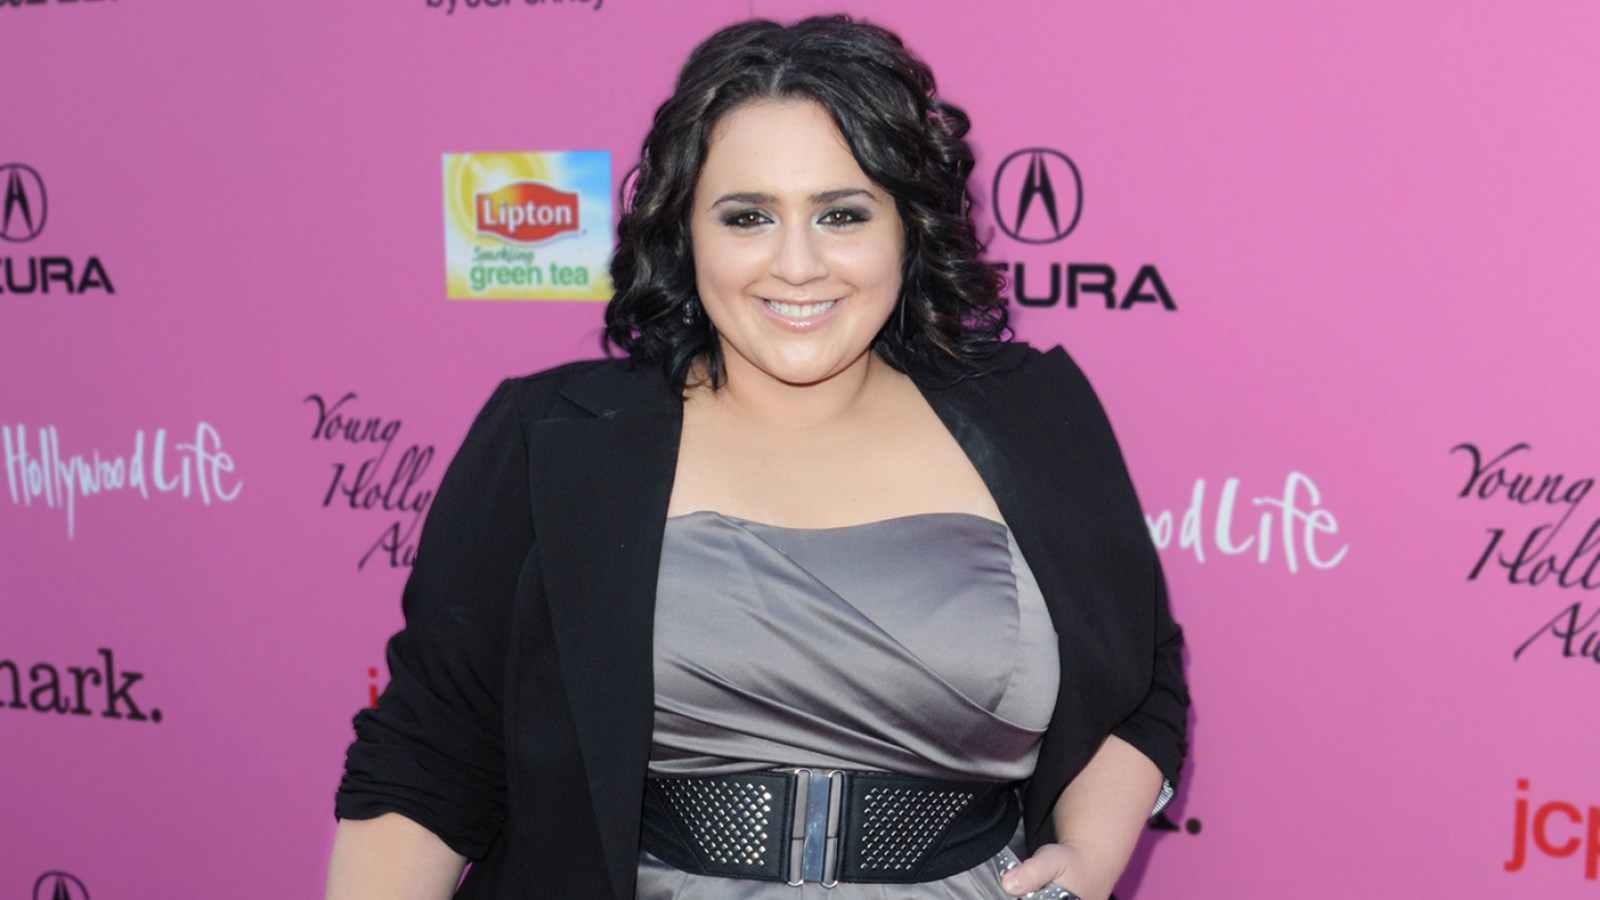 Hairspray's Nikki Blonsky Cries Hysterically Over Instagram Hack